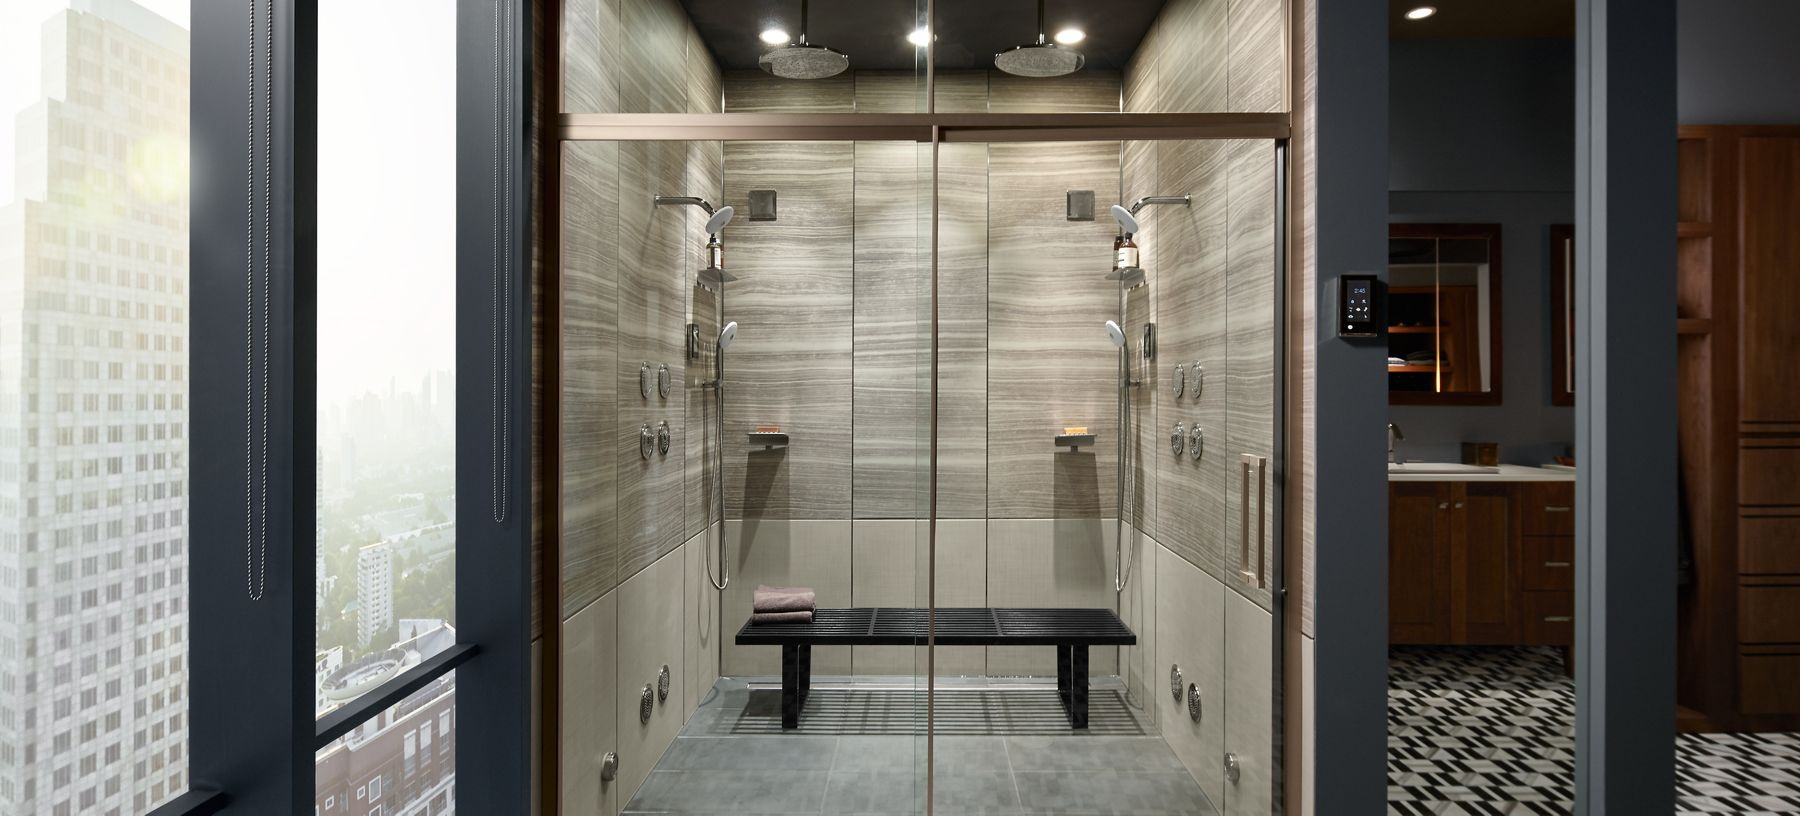 smart showering experience, voice command control for personalised steam, music, light and water tempreture